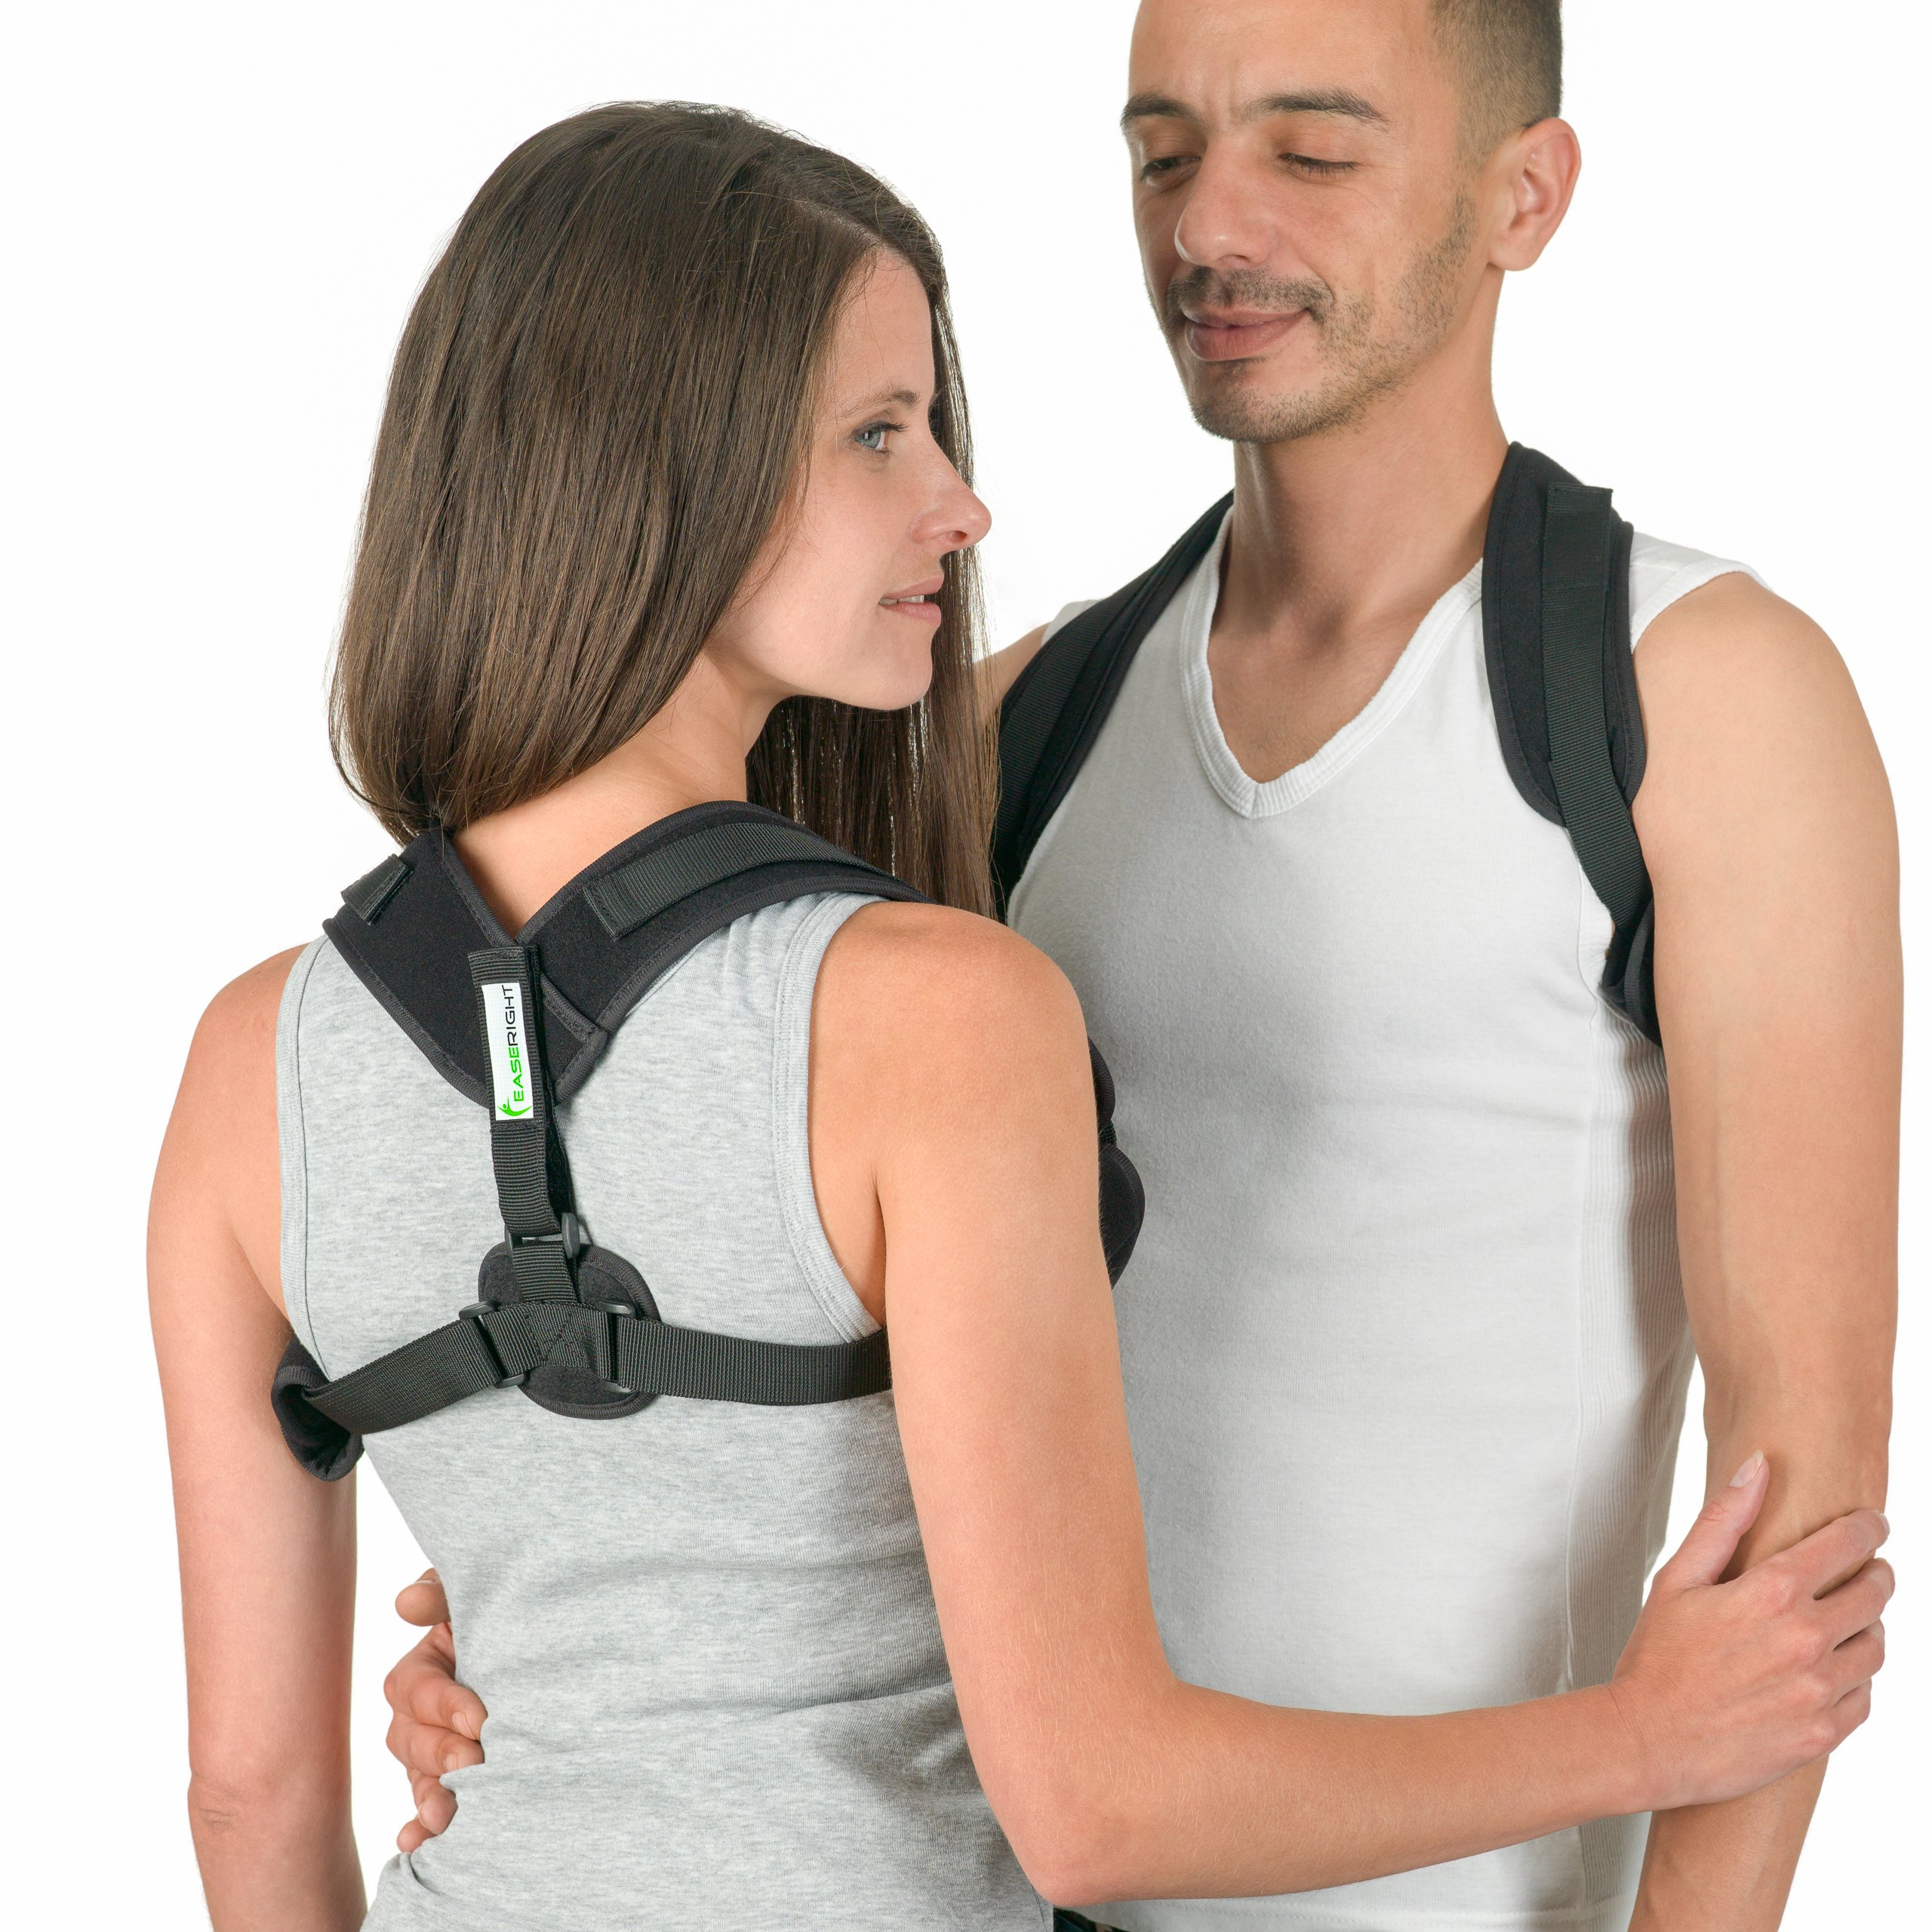 Posture Corrector for Women and Men - by EaseRight - Easy Adjustable Brace - Discreet and Comfortable Under Clothes - Smart Reminder Device to Keep The Back and Neck Straight